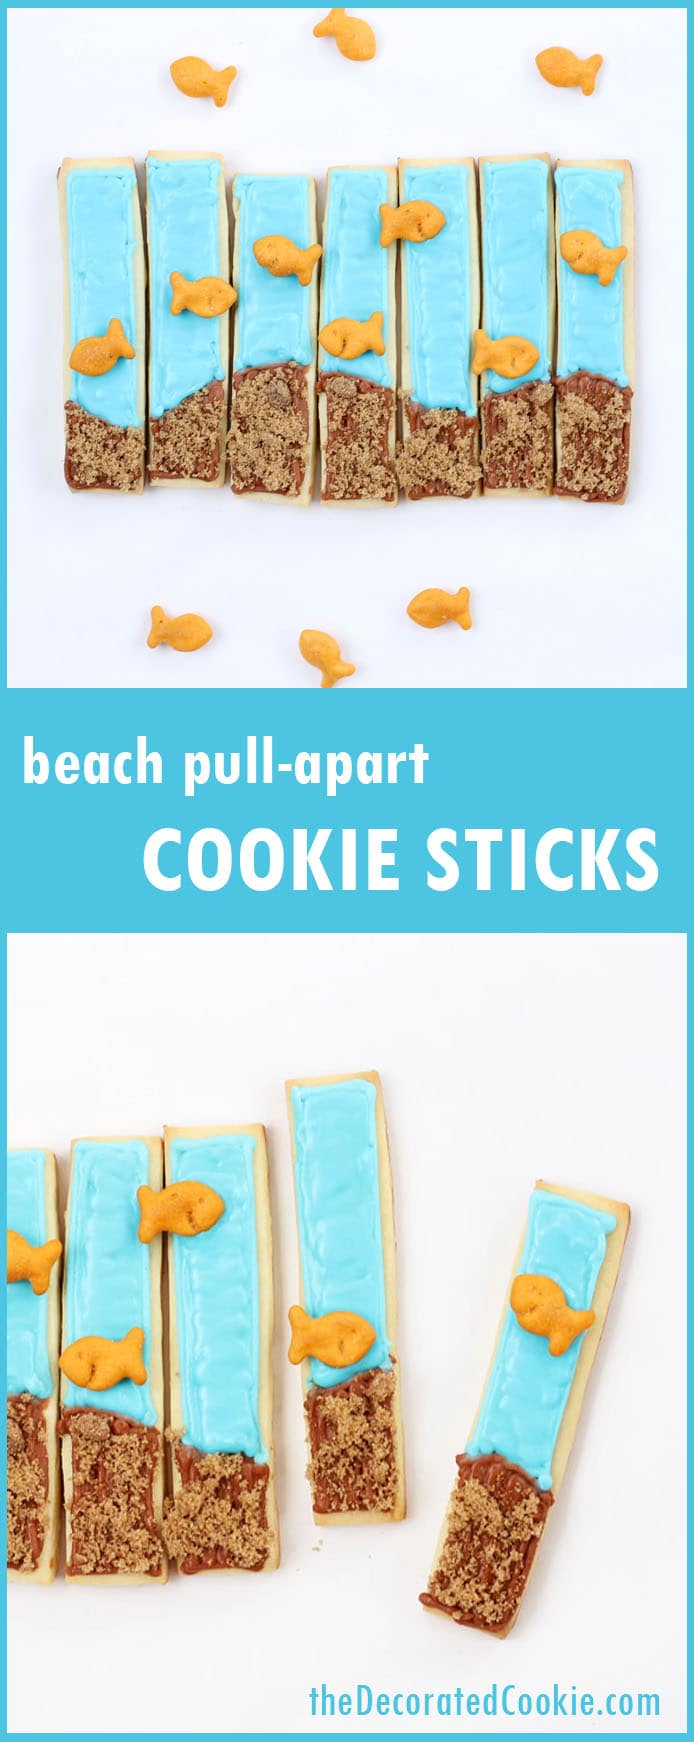 pull-apart beach cookie sticks for summer